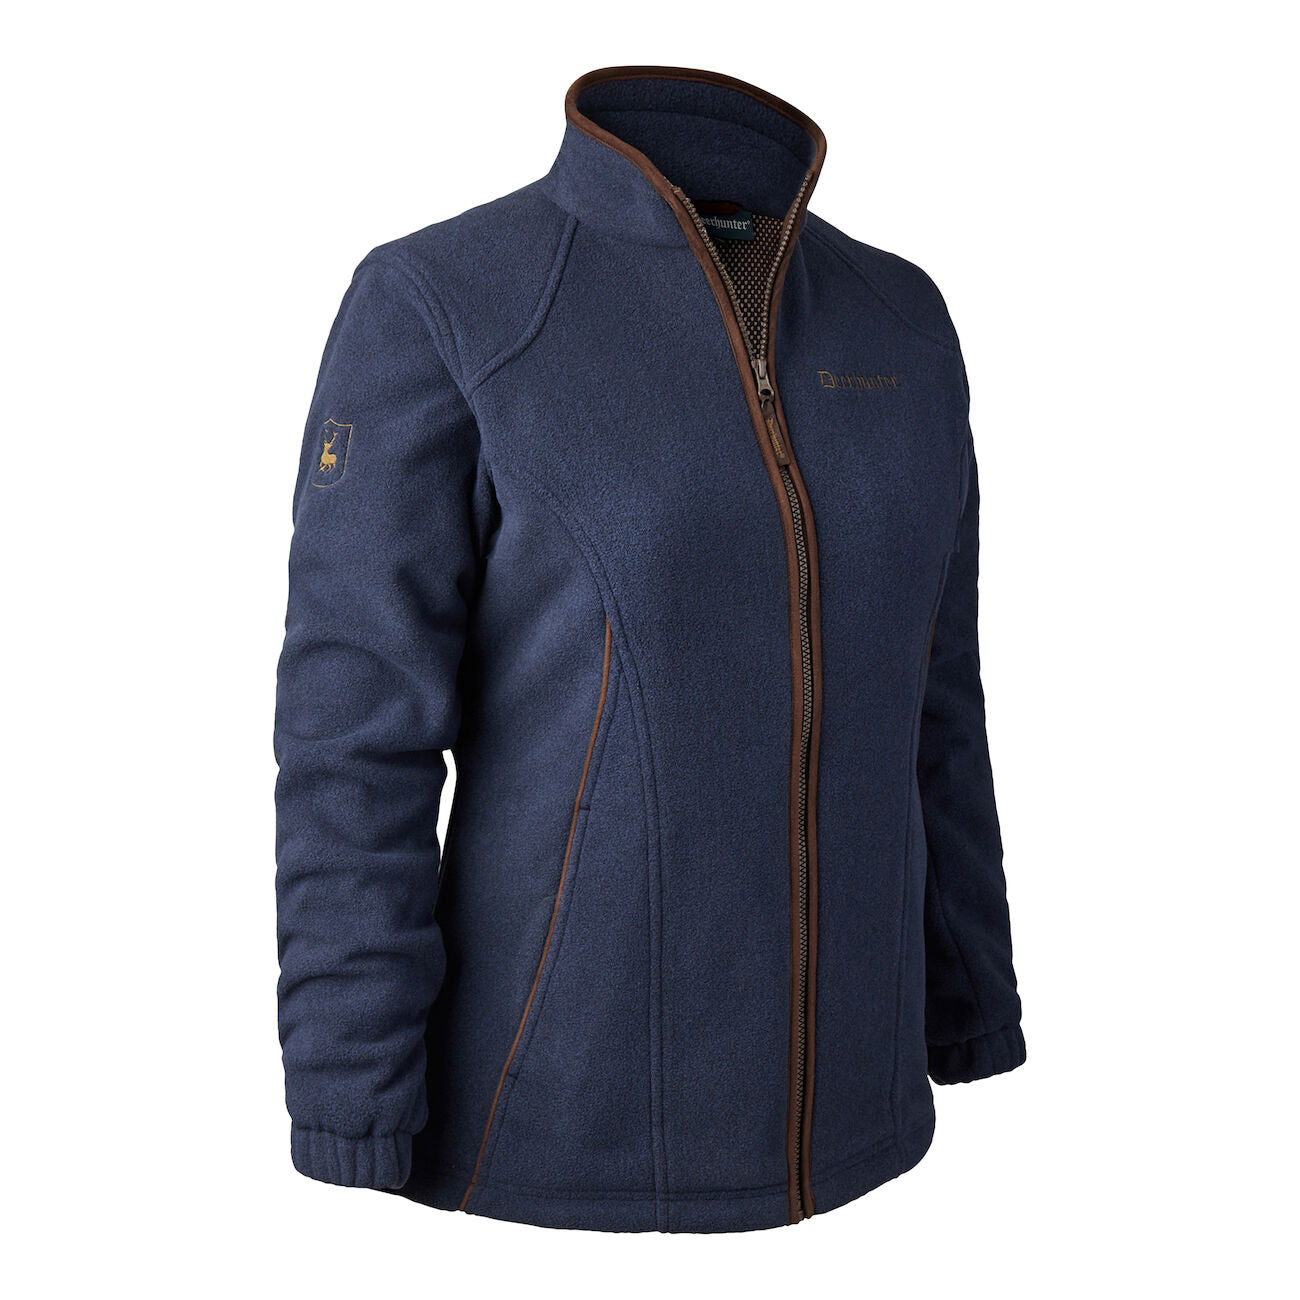 Deerhunter Lady Josephine Fleece Jacket ( with membrane) - Navy